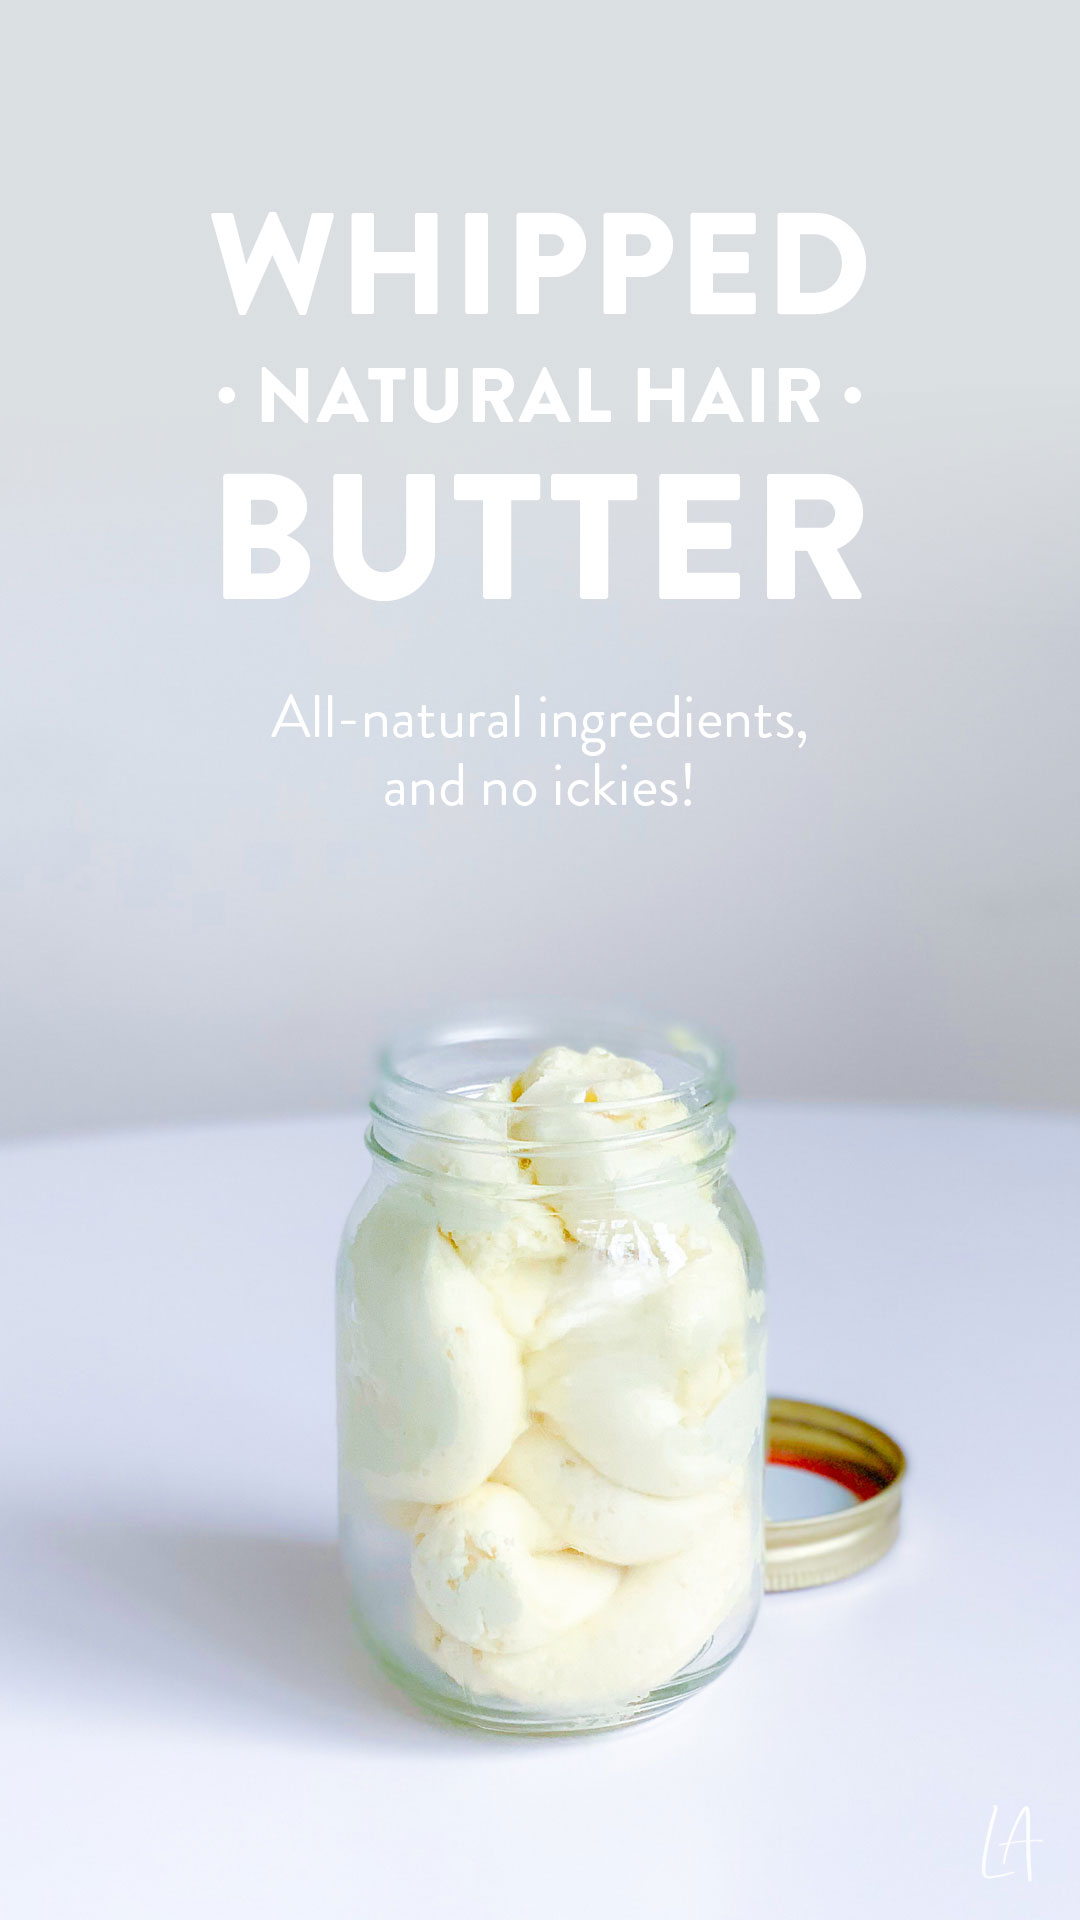 Whipped natural hair butter